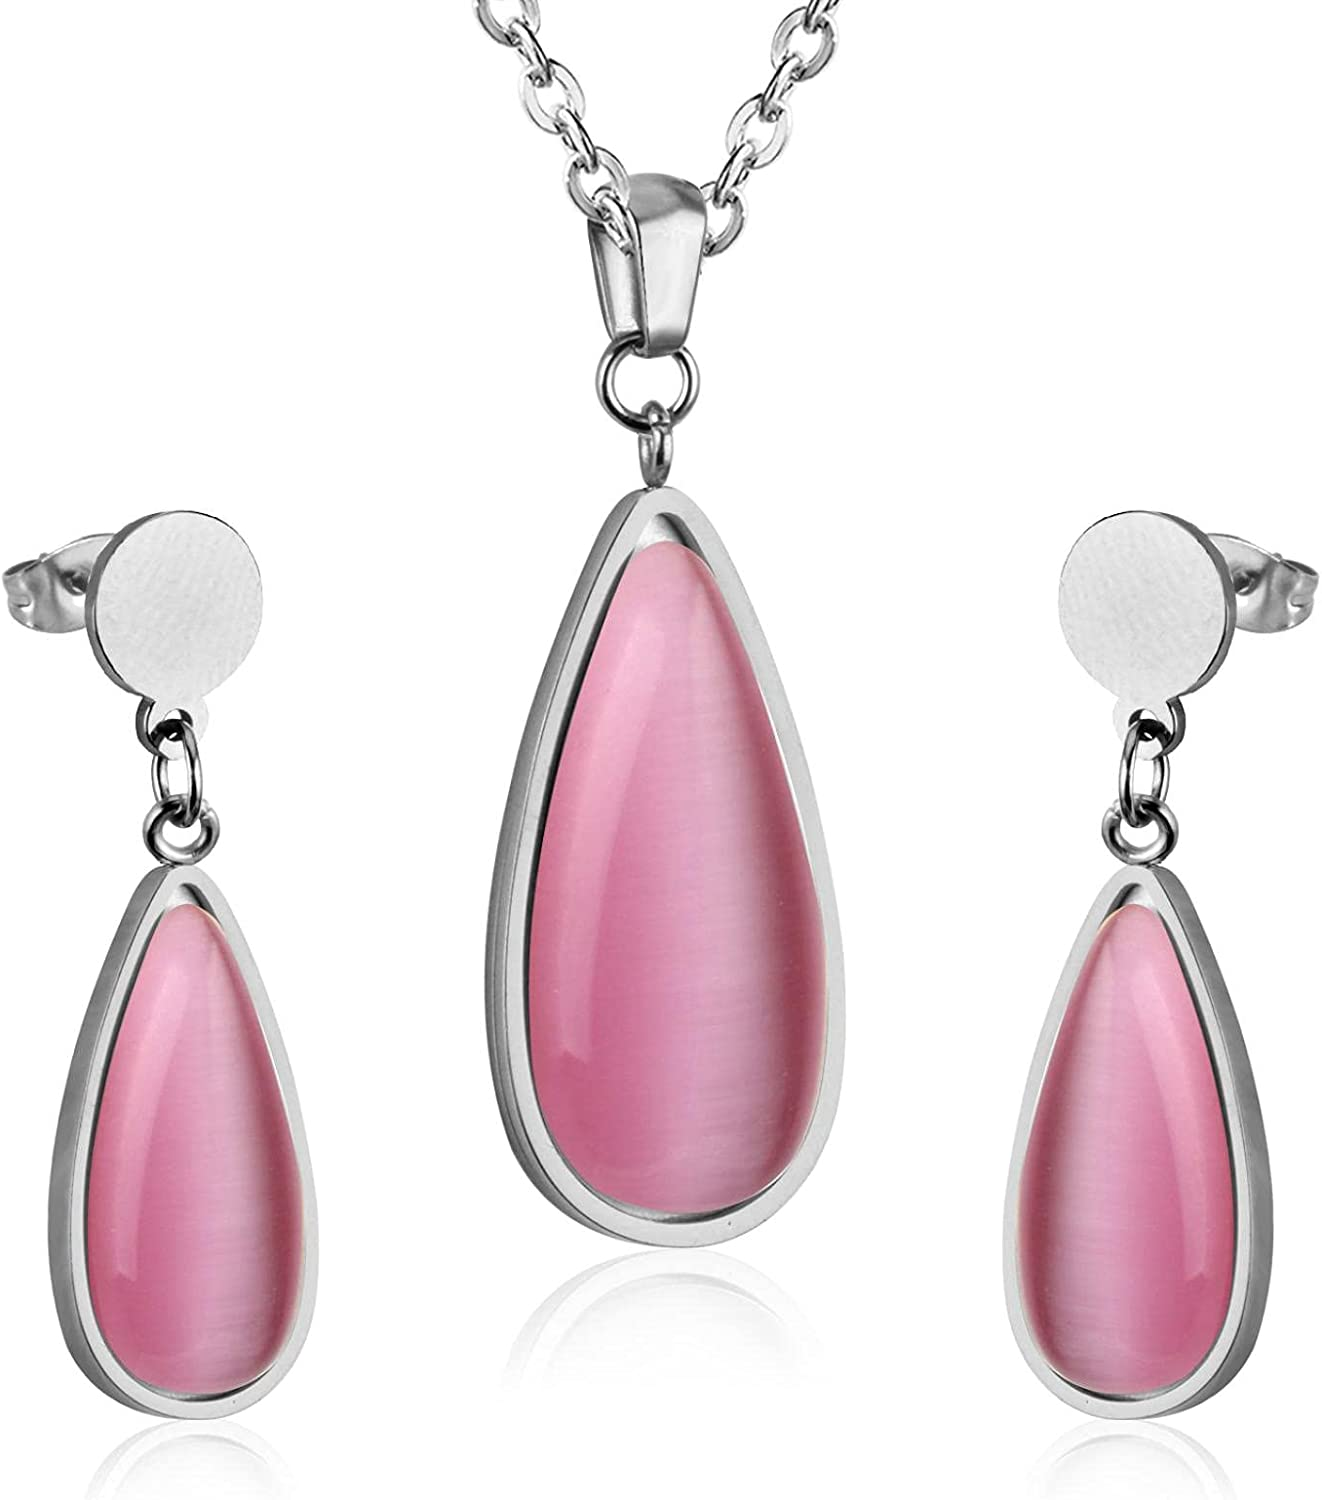 Opals Pendant Necklace Stainless Steel Jewelry Sets Fashion Drop Earring Party